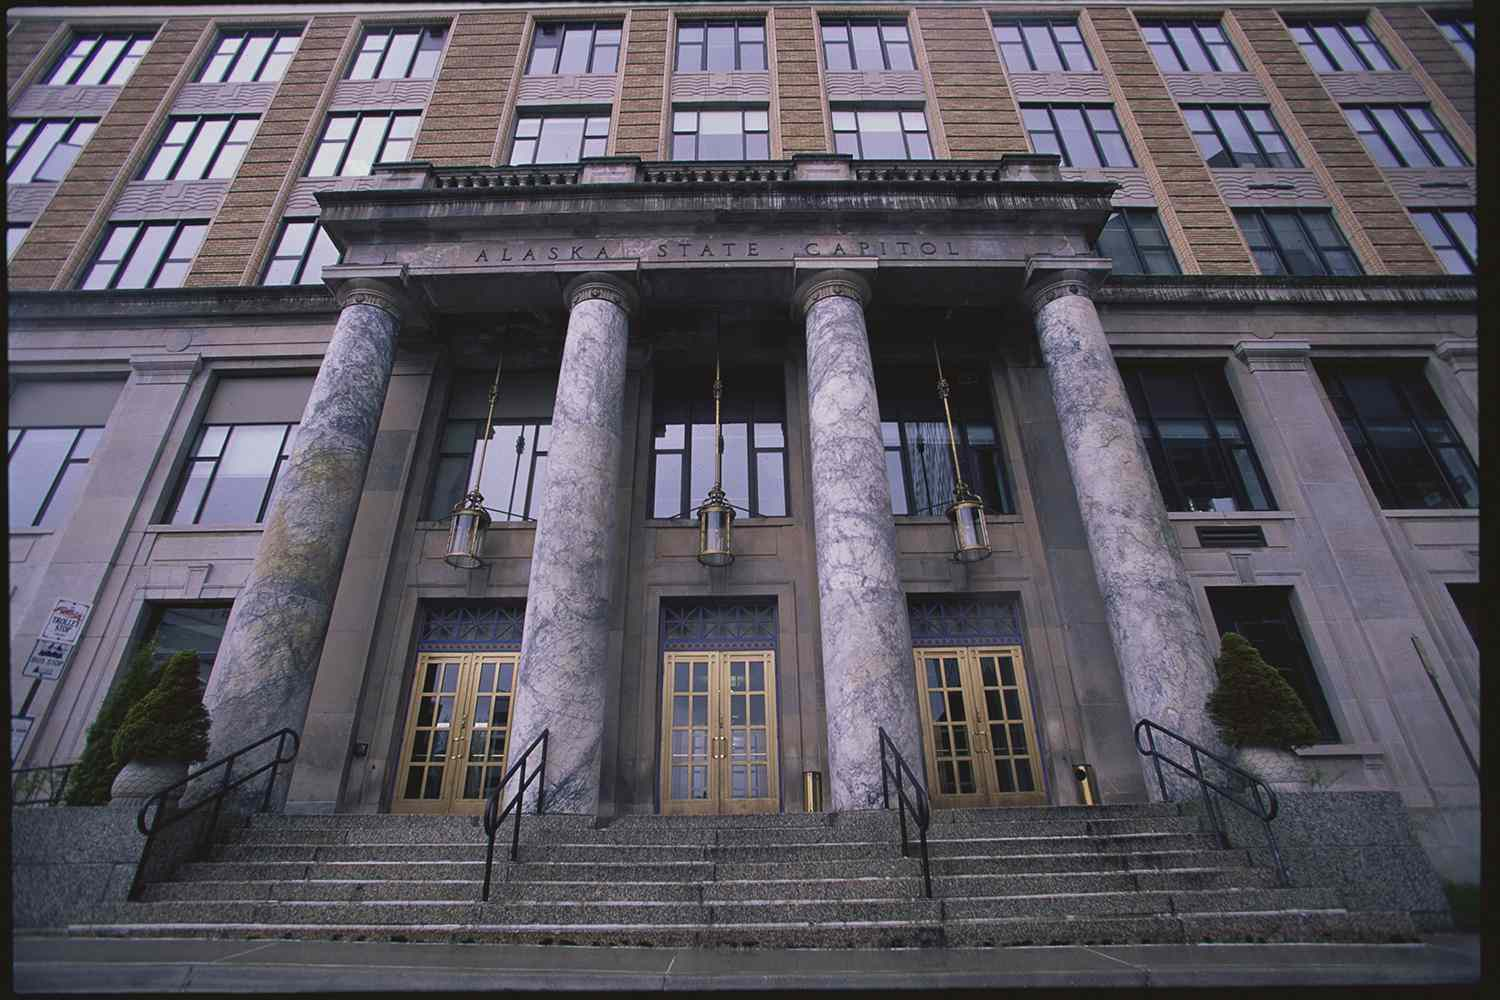 Exterior of the Alaska State Capitol Building